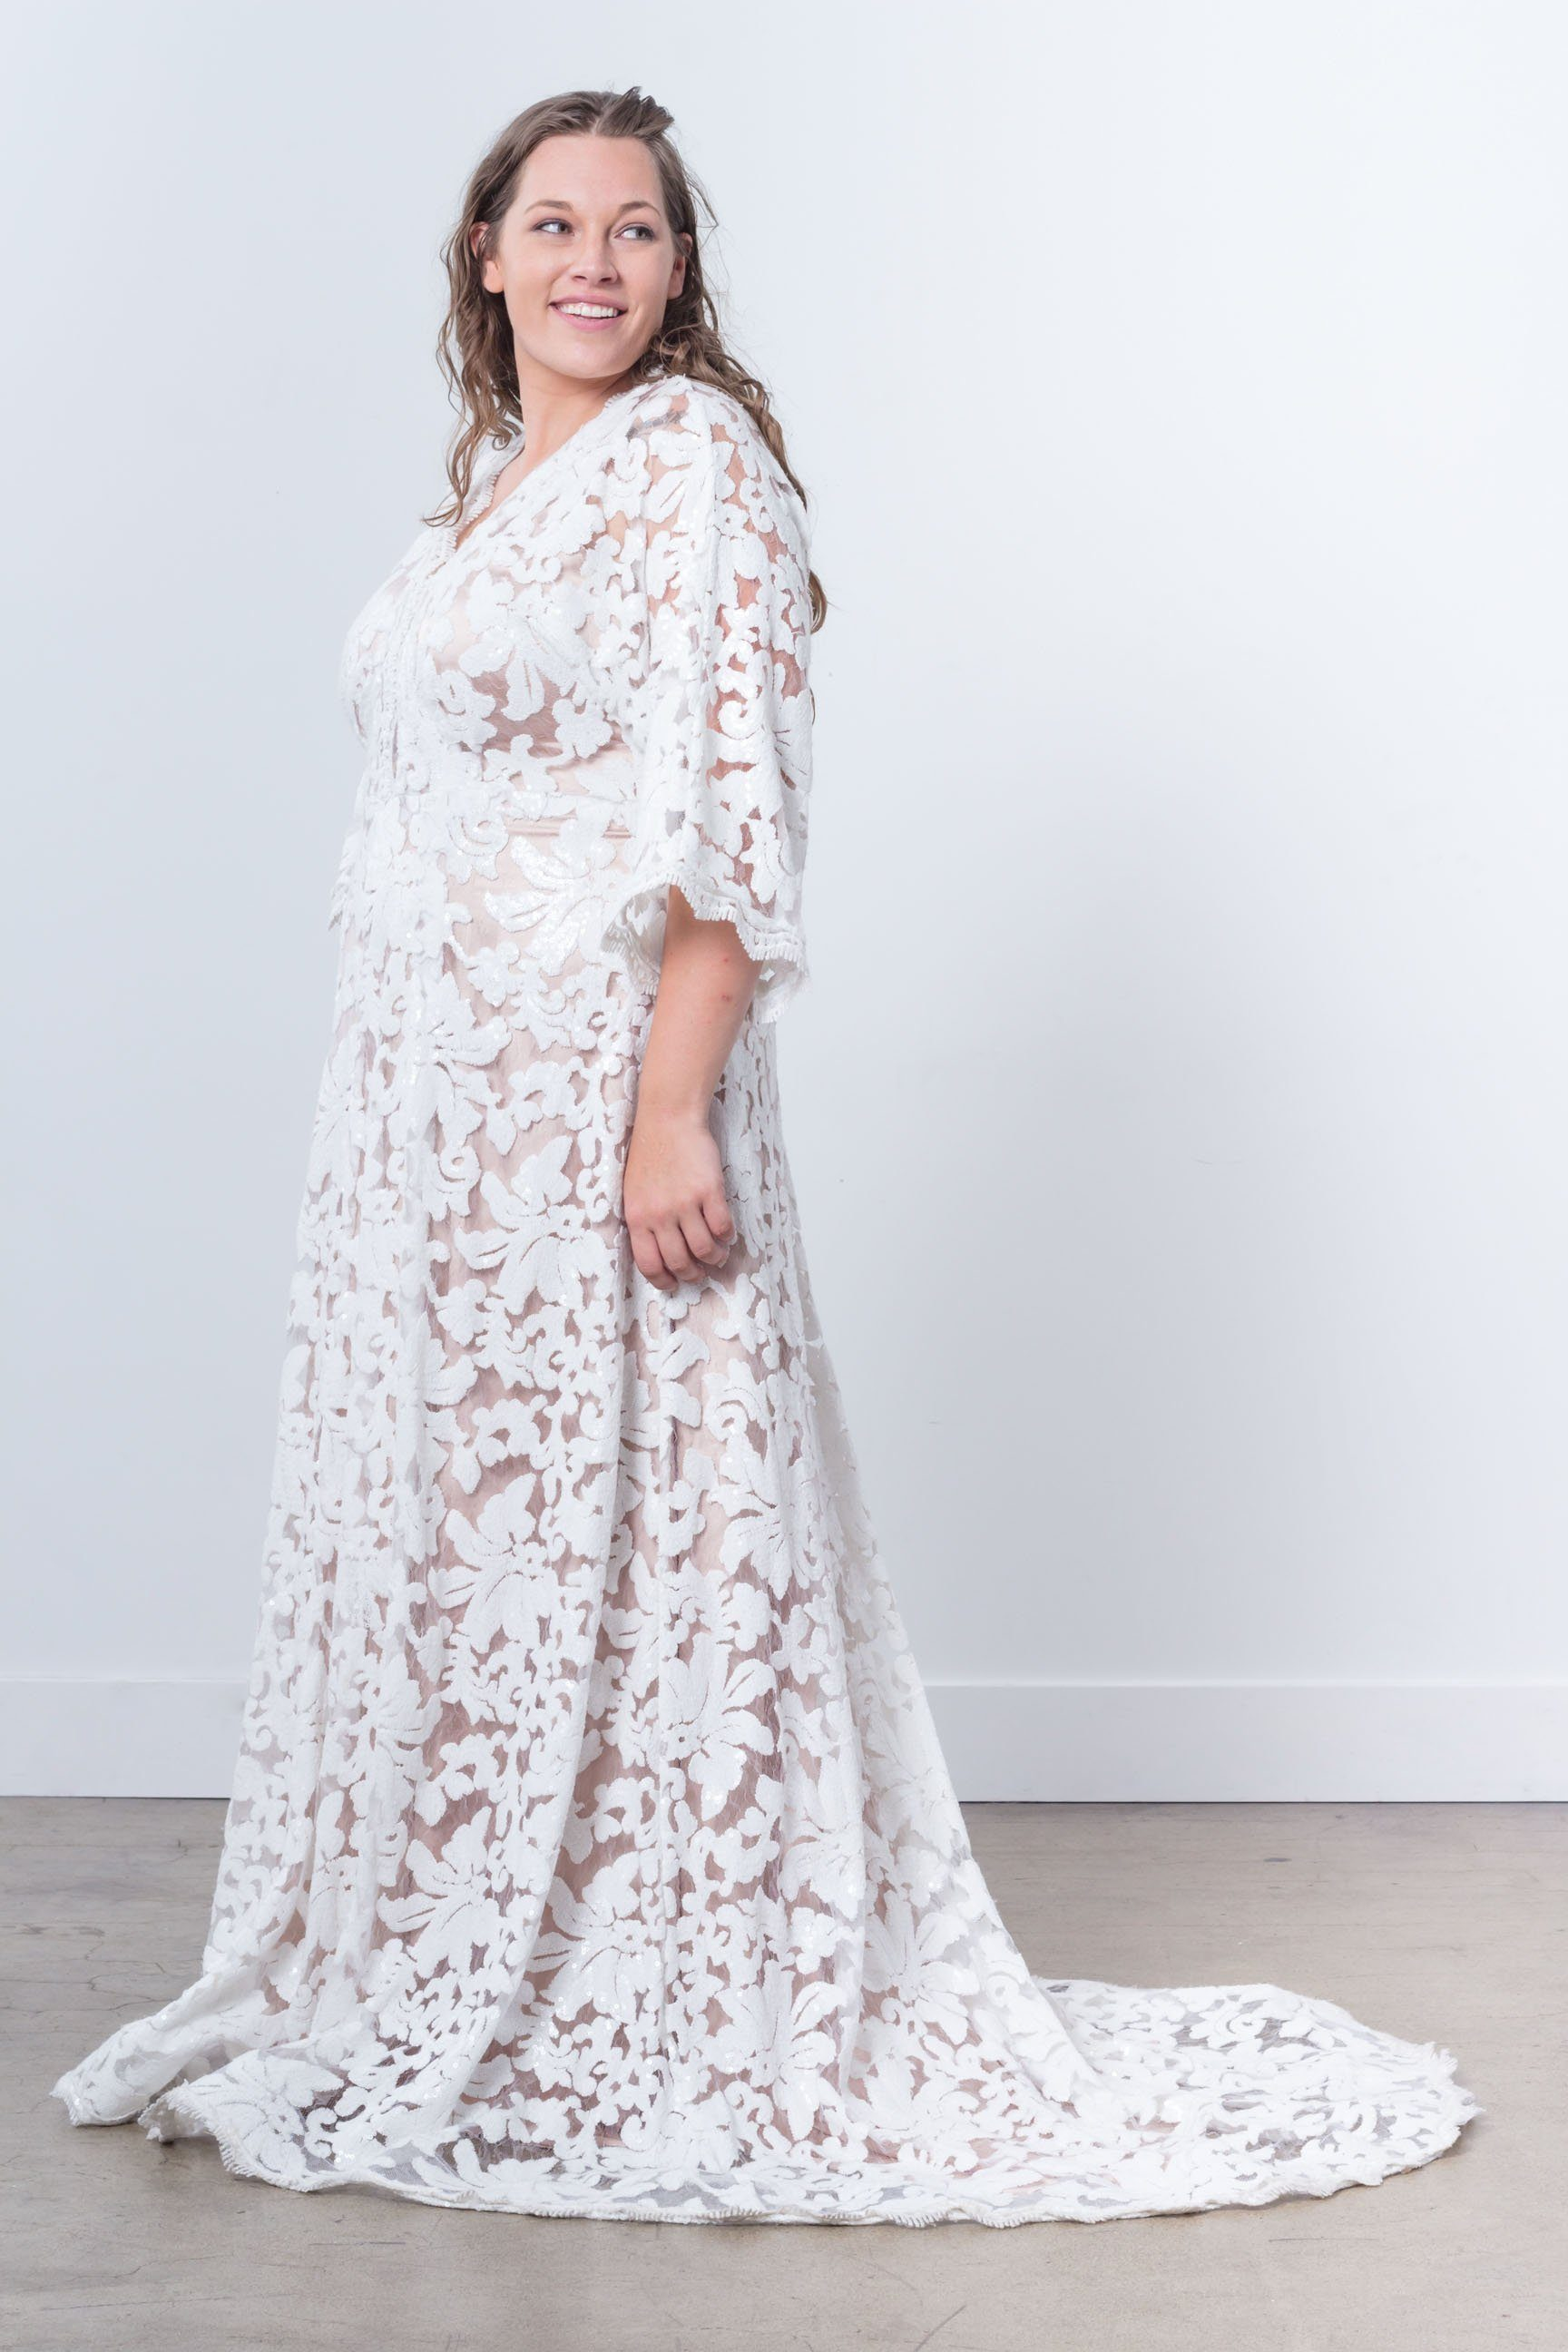 Nerecina Plus Size Majestic Gown Bridal Formalwear Made in LA Nude Lace See through Nude gown long sleeve